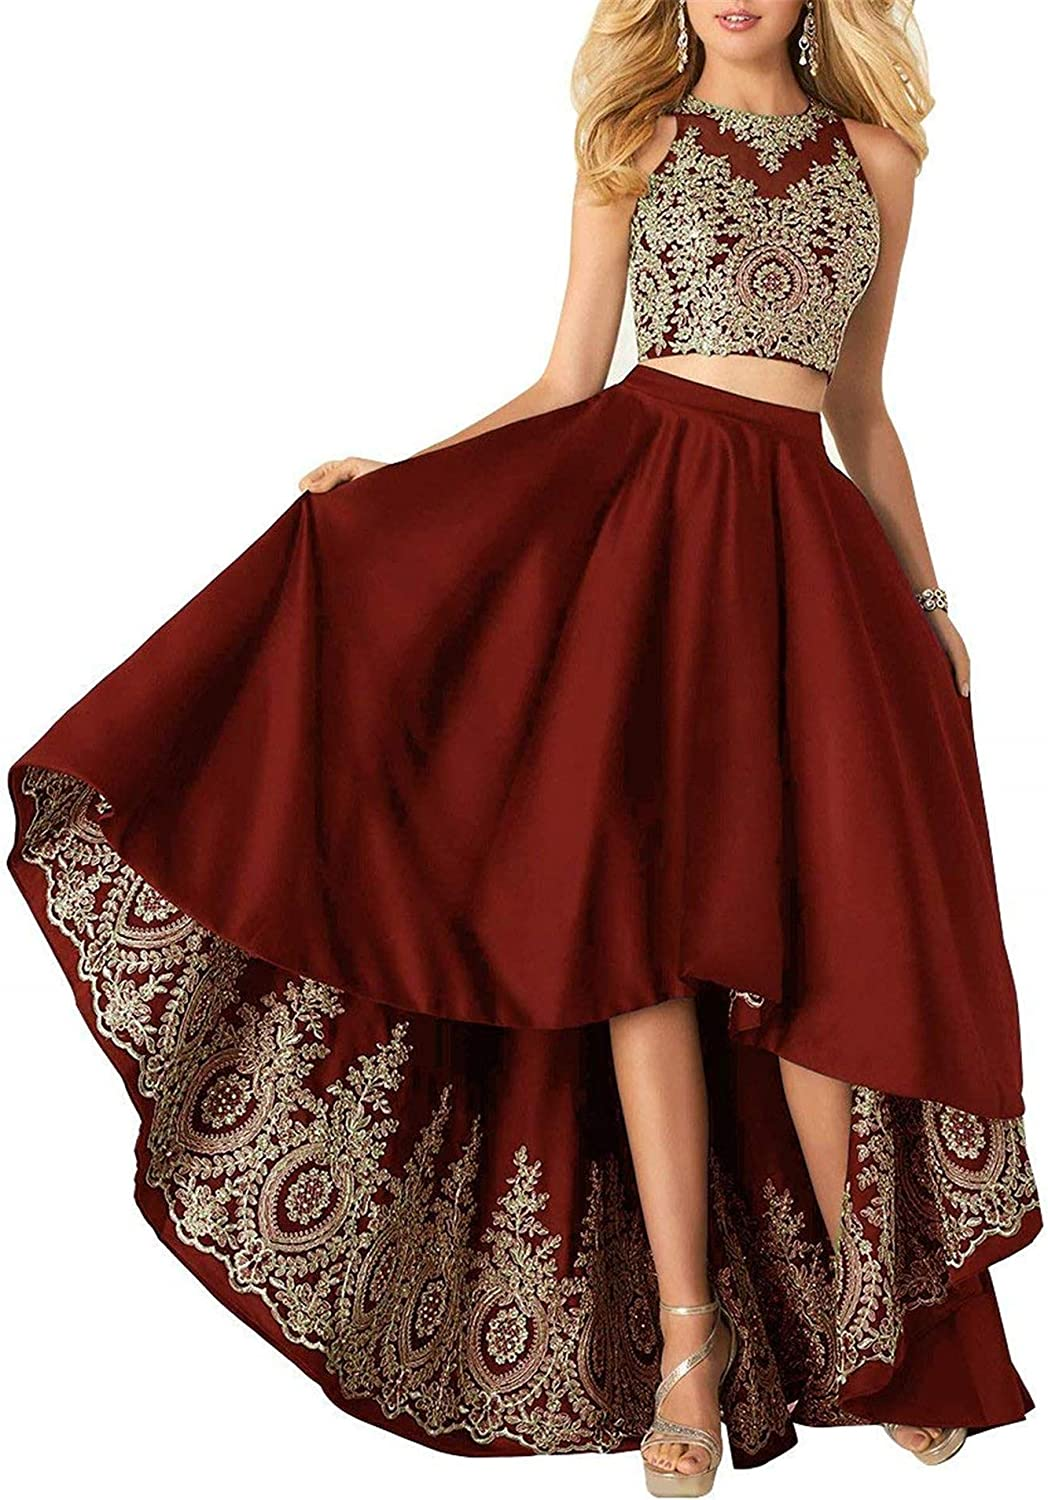 Falydal Applique A Line Evening Dress High Low Two Pieces Prom Formal Dresses